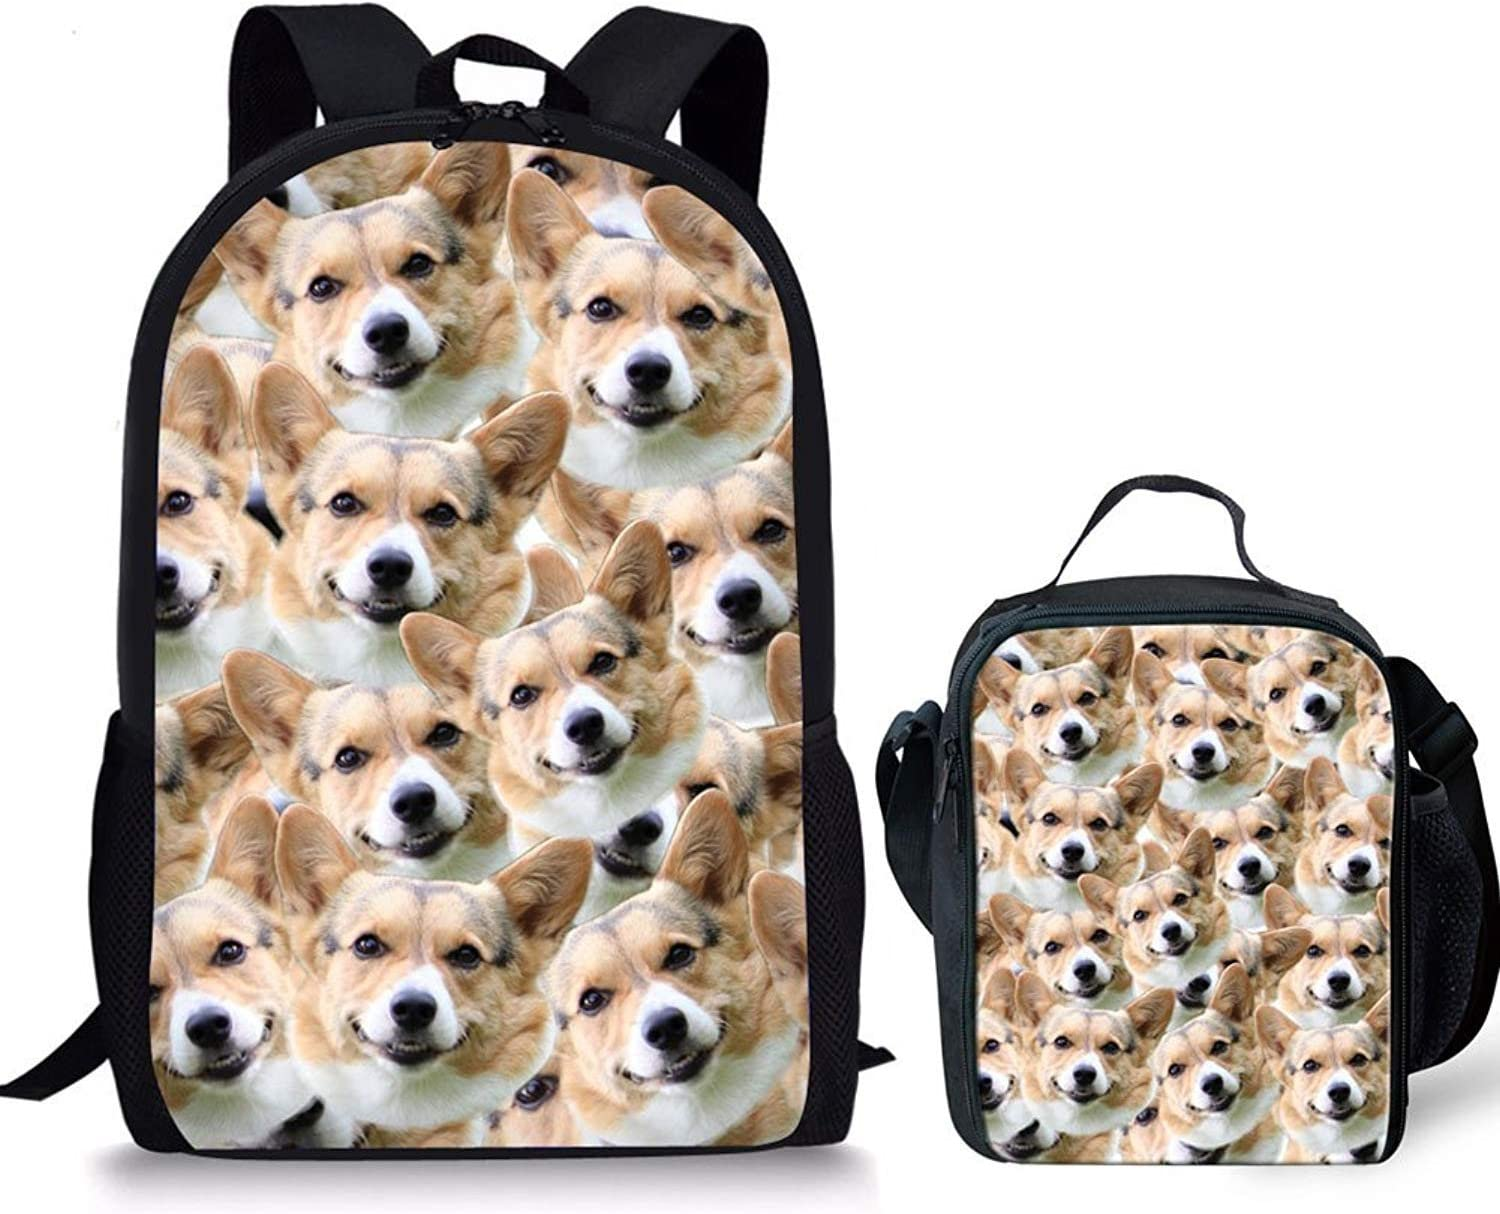 HUGS IDEA Cute Corgi Dogs Printing Backpack Children Book Bag and Lunch Box for Travel School